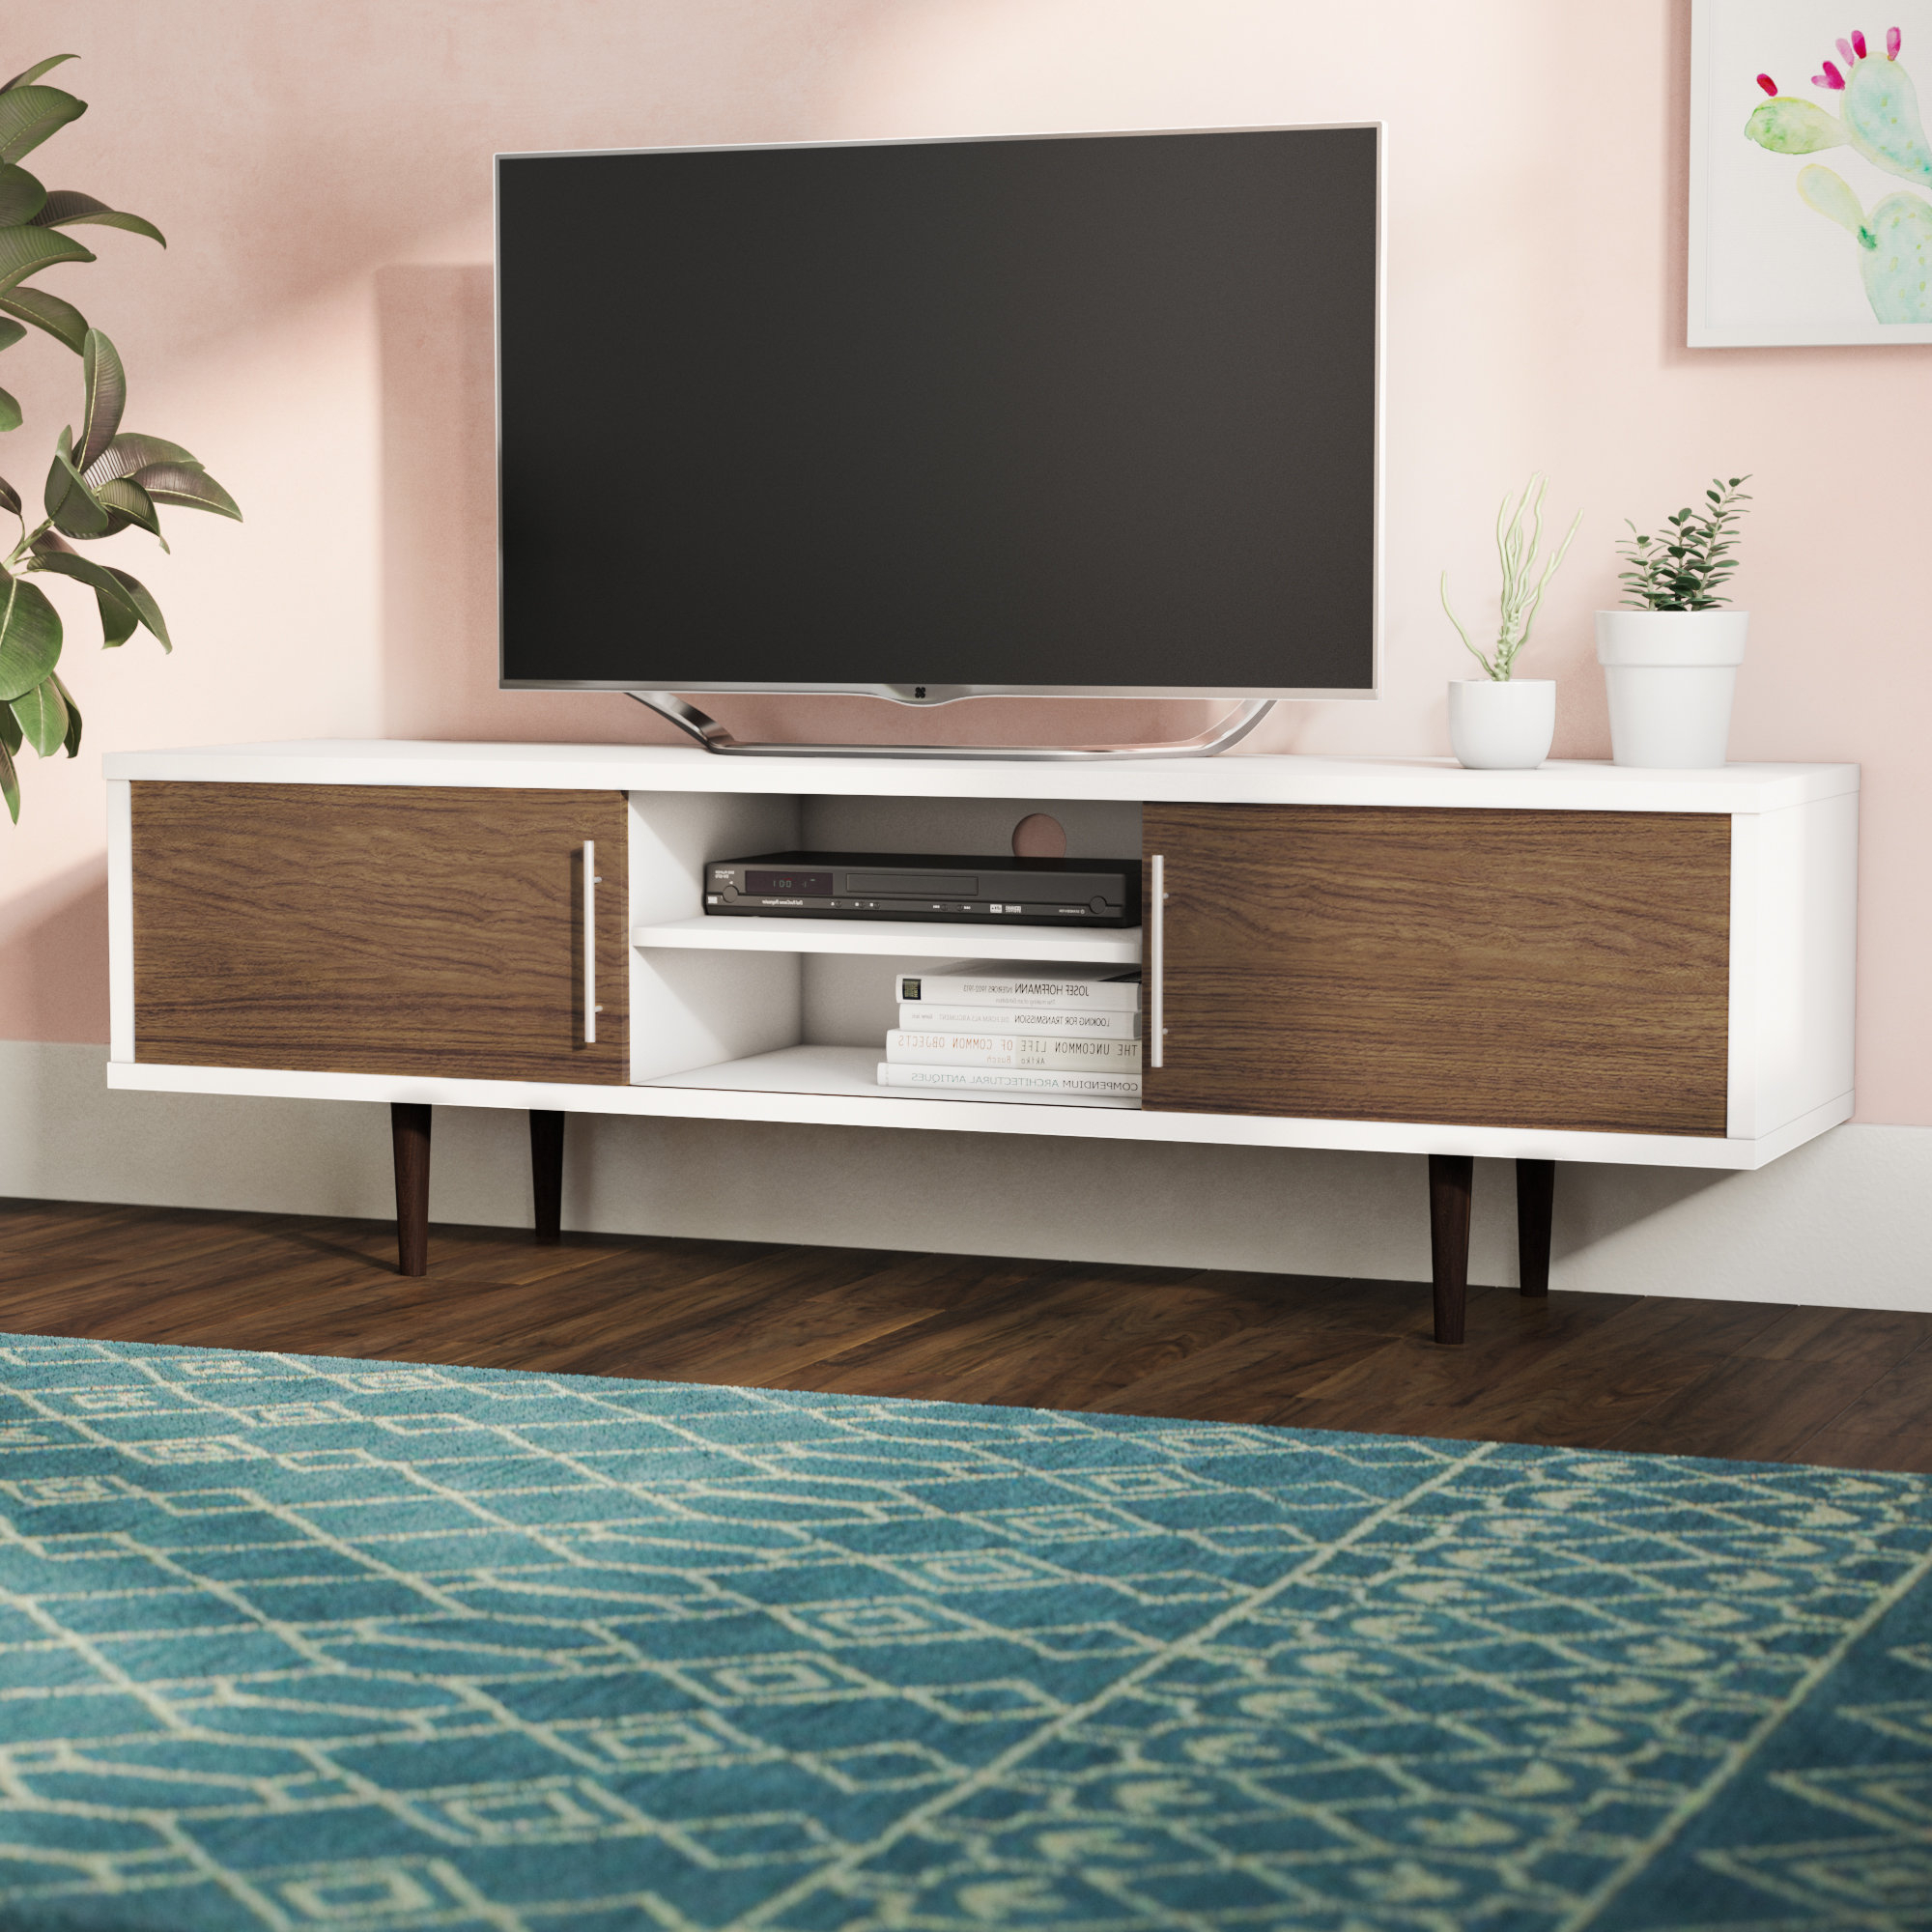 Allmodern Within Contemporary Tv Stands For Flat Screens (Gallery 10 of 20)